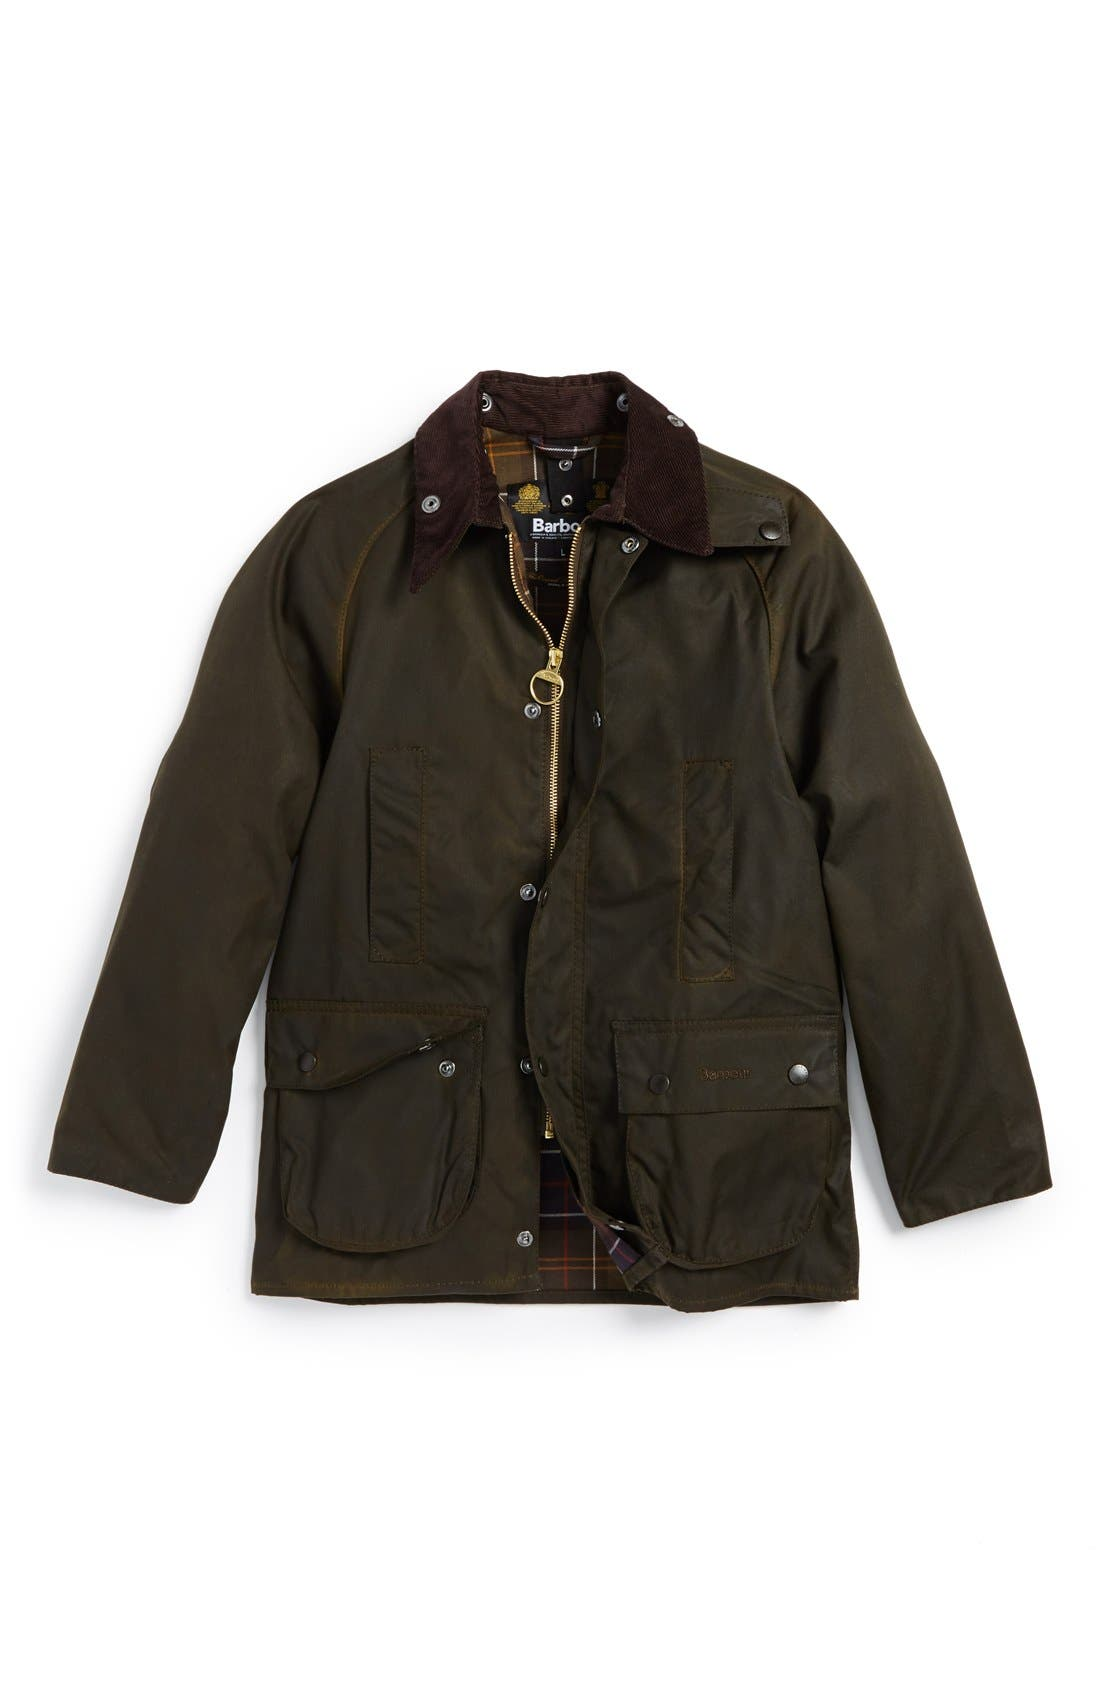 Alternate Image 1 Selected - Barbour 'Classic Beaufort' Waterproof Waxed Cotton Jacket (Big Boys)